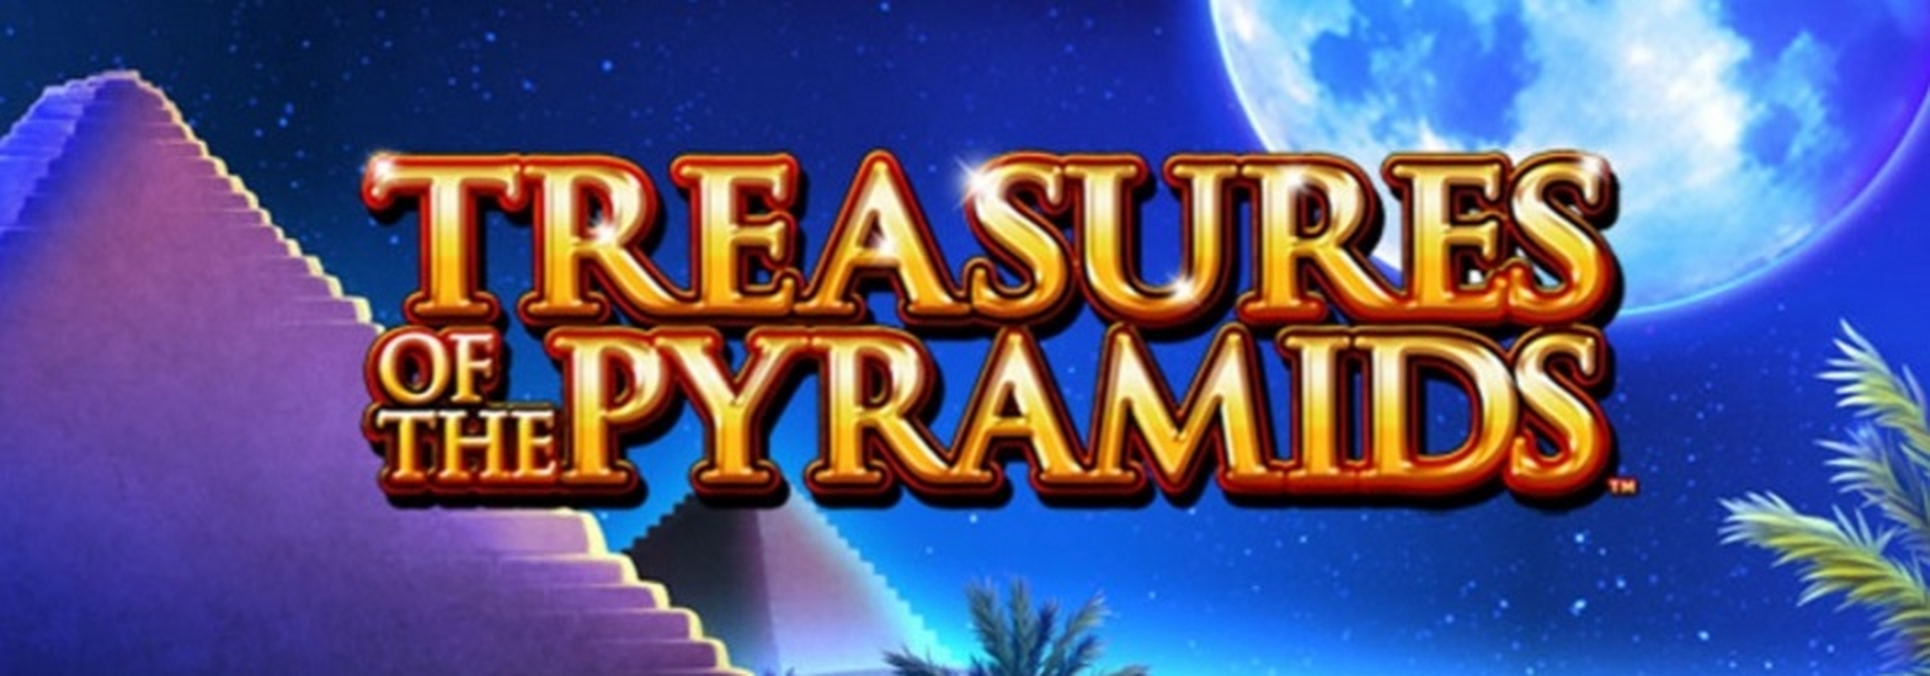 The Treasures of the Pyramids Online Slot Demo Game by IGT